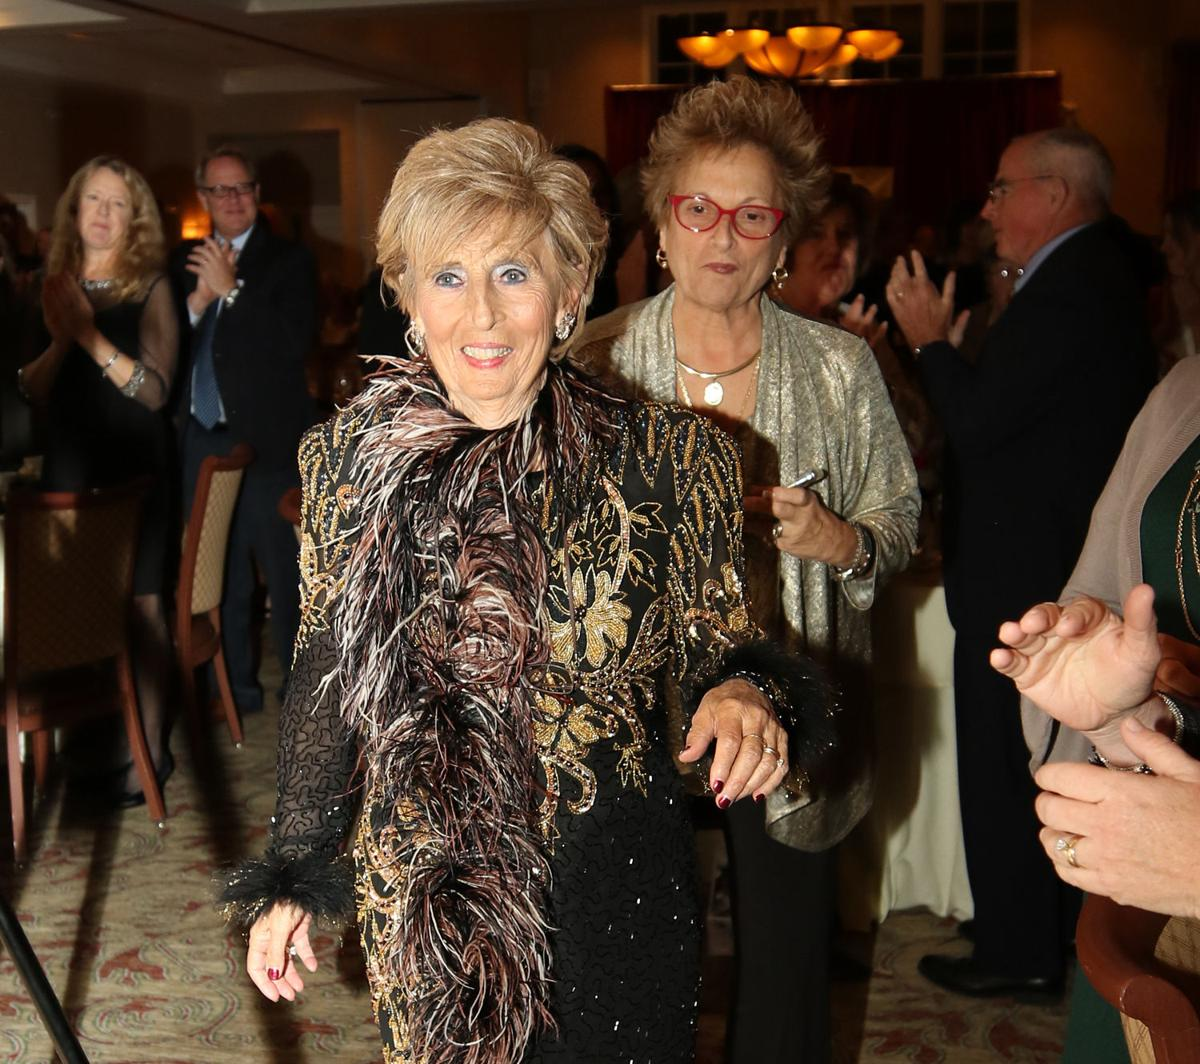 Angie Smith, recipient of the 2019 Athena Award, smiles as she makes her way to the podium at the 17th Annual Athena Awards Banquet was held Wednesday evening, October 23rd, 2019 at the Lake of Isles in North Stonington. | Jackie Turner, Special to The Sun.